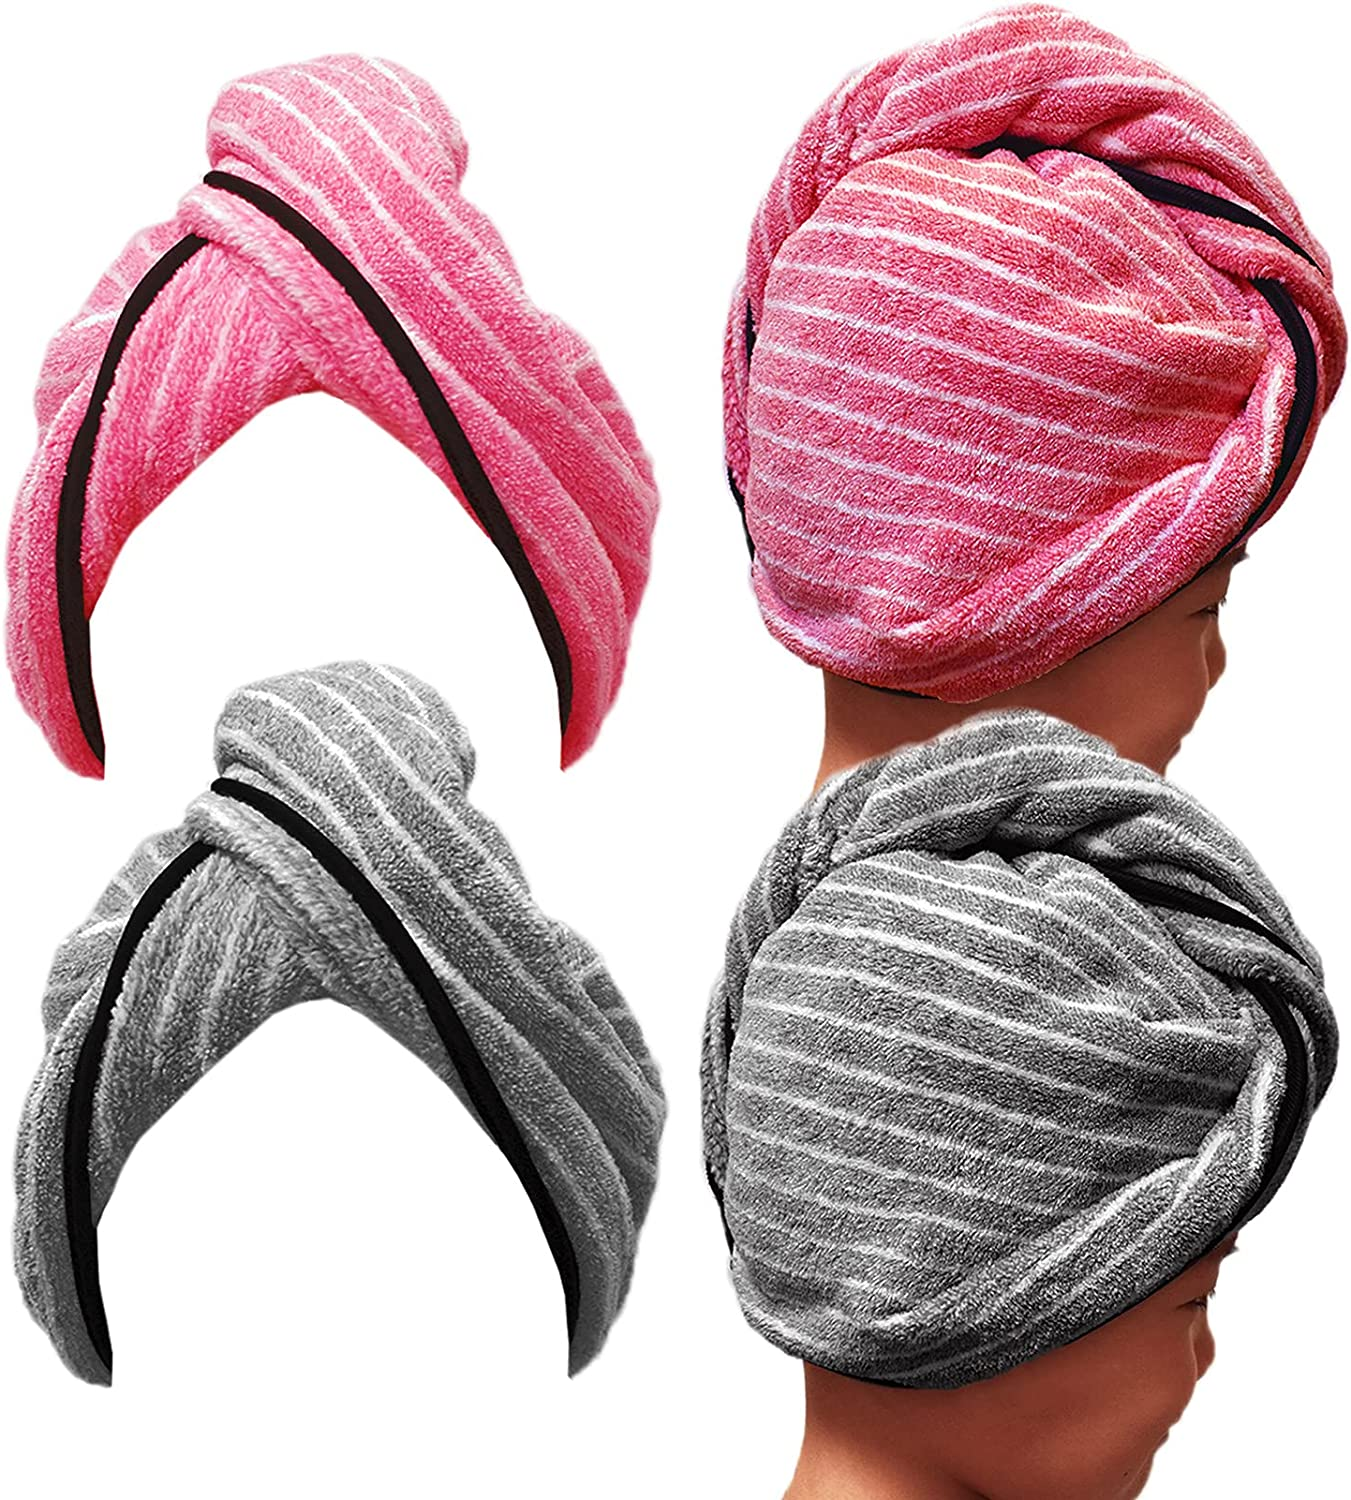 Premium Microfiber Hair Towel Wrap for Ranking integrated 1st Topics on TV place x25.8 Women- 10.5 2 Pack